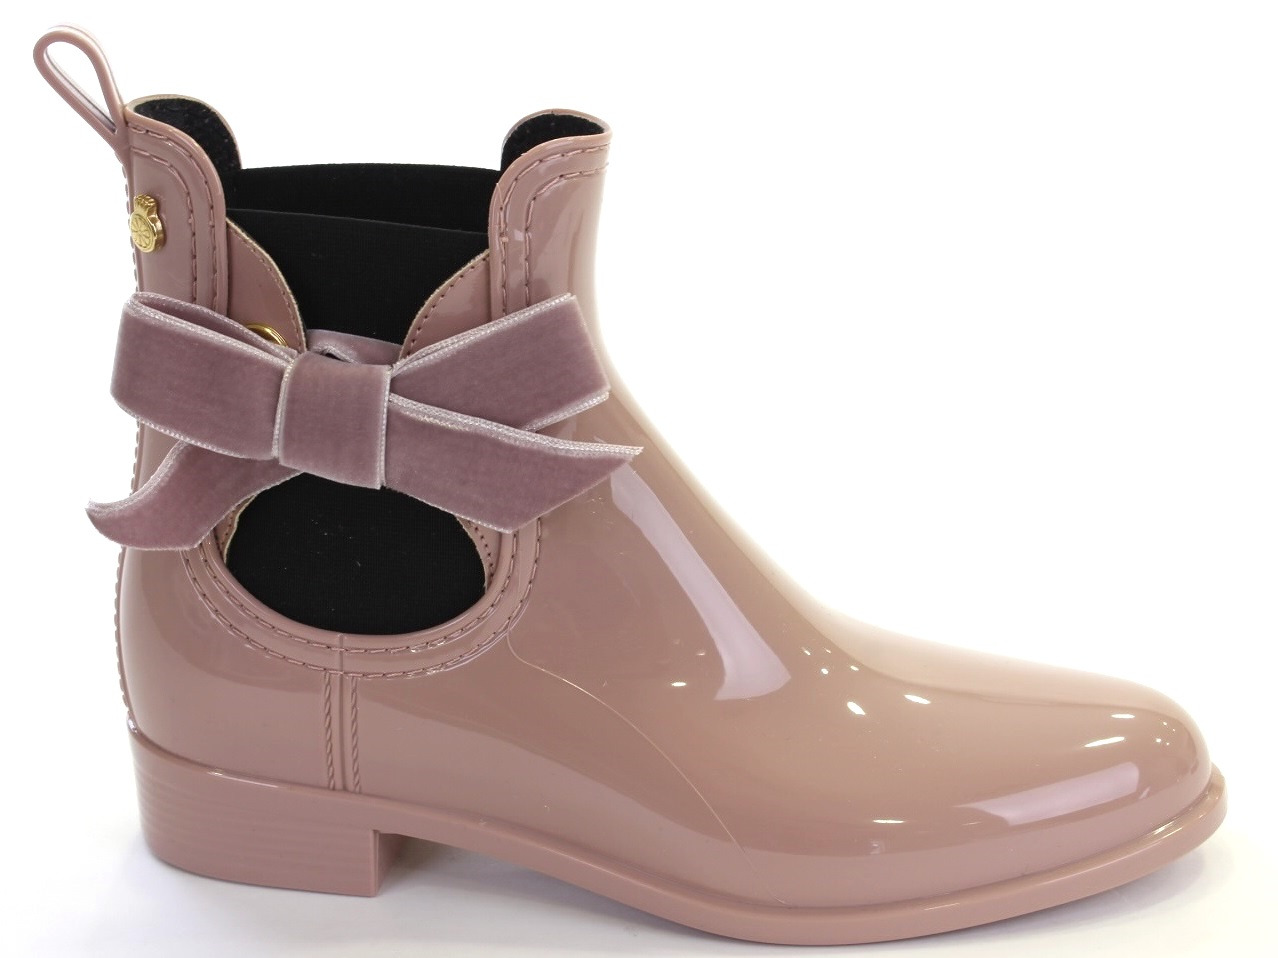 Flat Ankle Boots Lemon Jelly - 637 PHILY